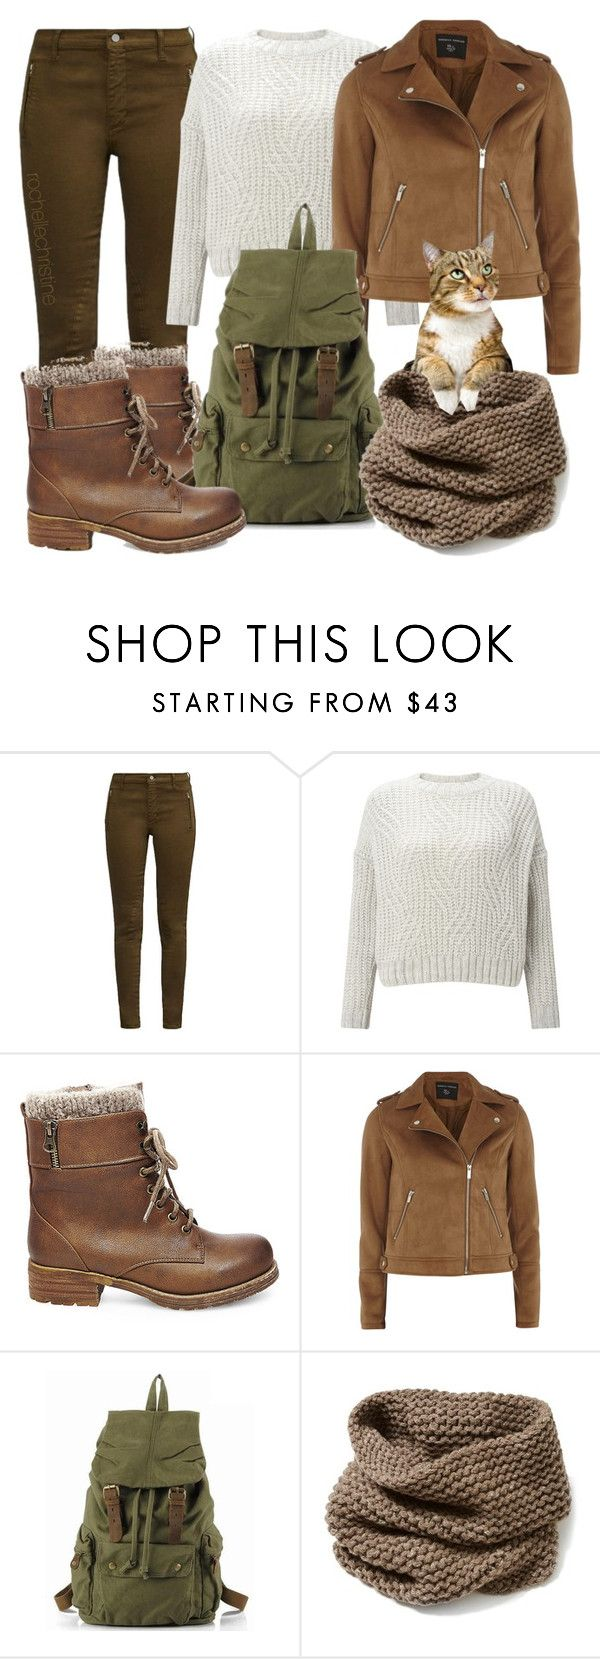 """""""Warm Winter Boots"""" by rochellechristine ❤ liked on Polyvore featuring French Connection, Miss Selfridge, Steve Madden, Dorothy Perkins, Lafayette 148 New York, Winter, GREEN, cats, brown and winterboots"""